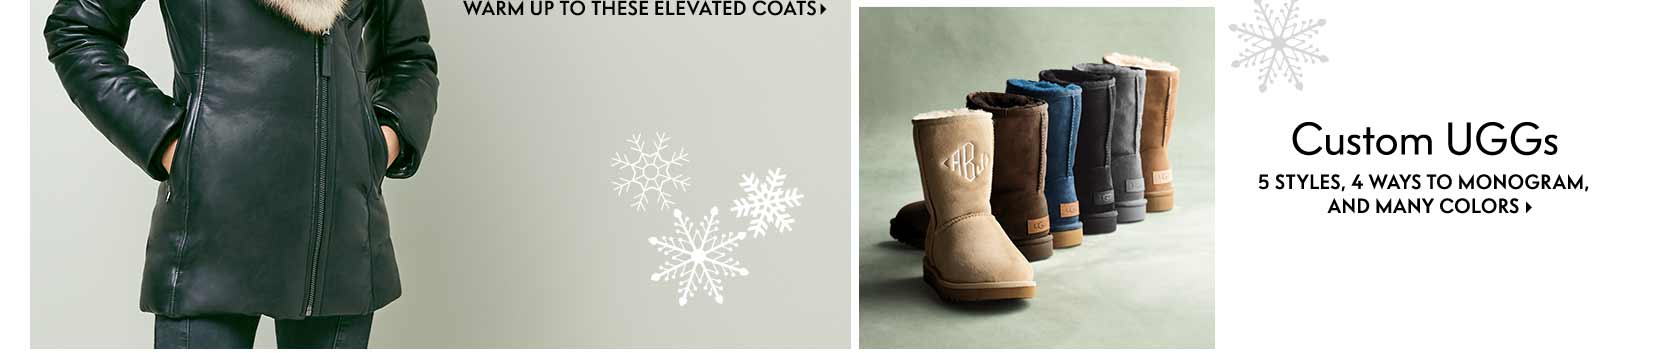 Take cover in women's coats, men's sweaters, and custom UGG boots